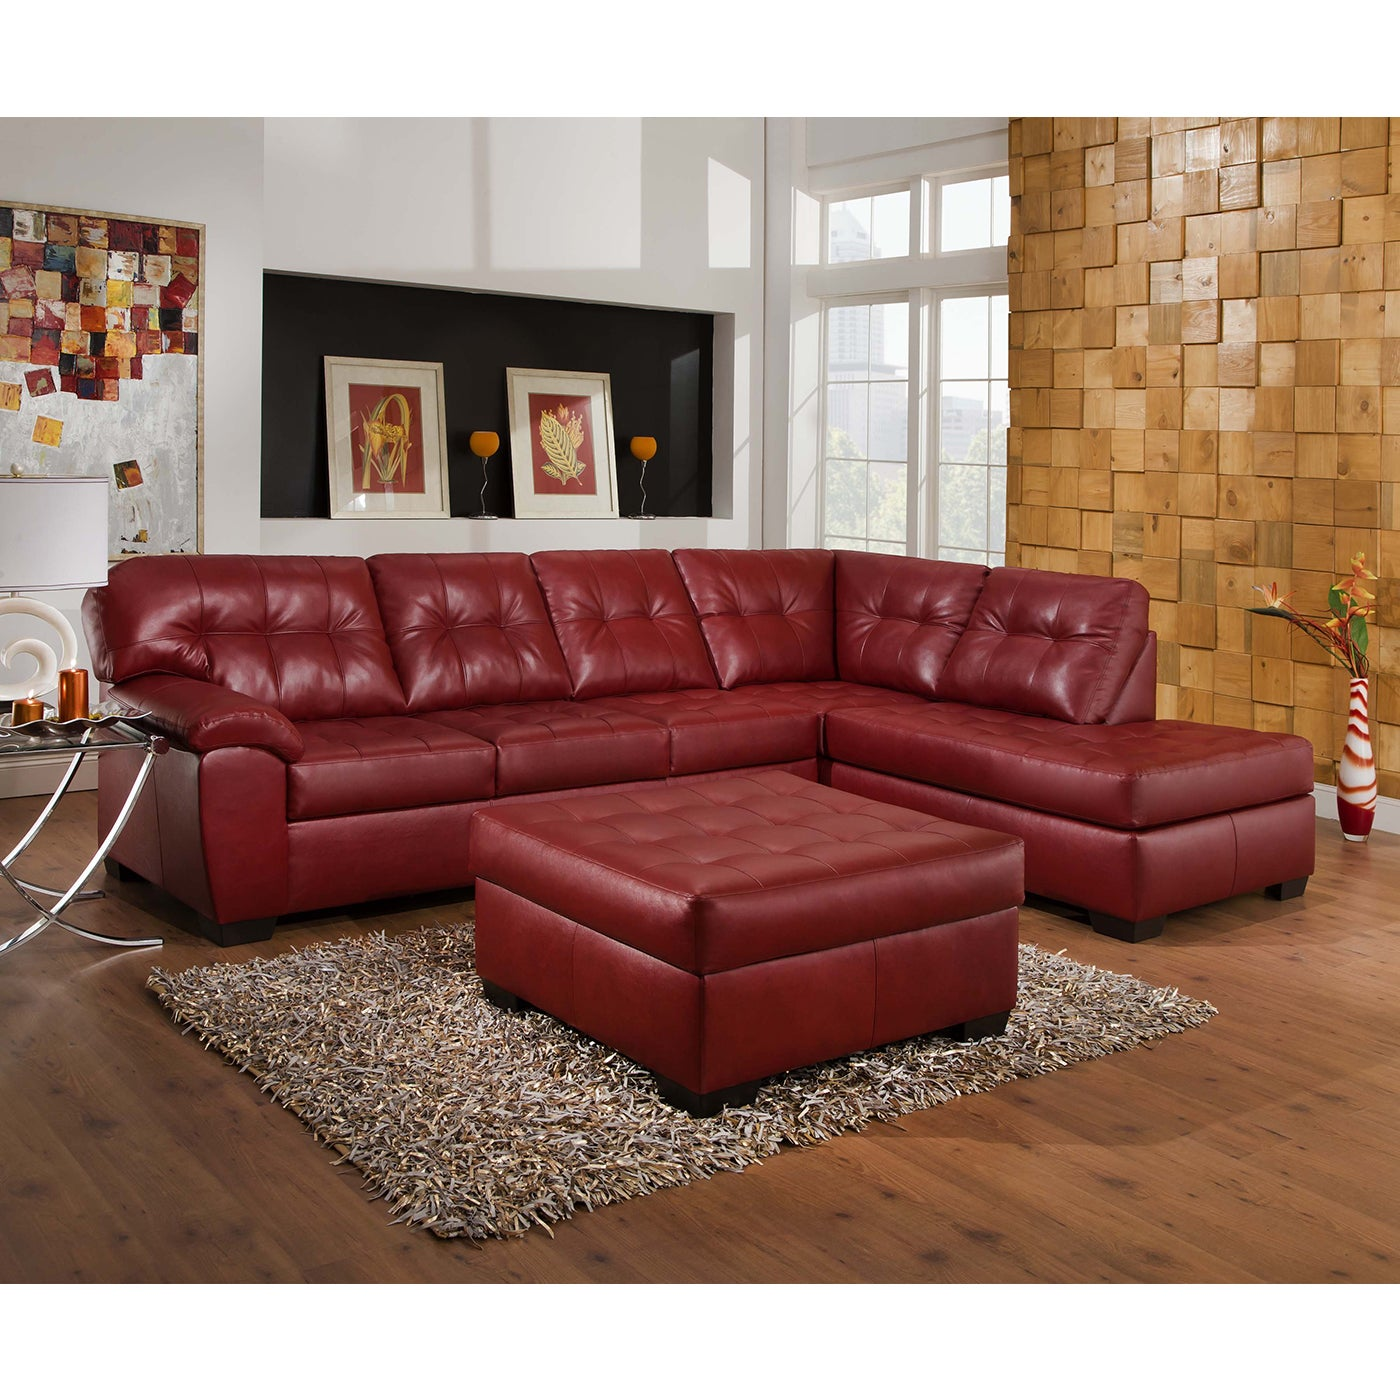 Simmons Upholstery Soho Cardinal Leather Sectional and Ot...